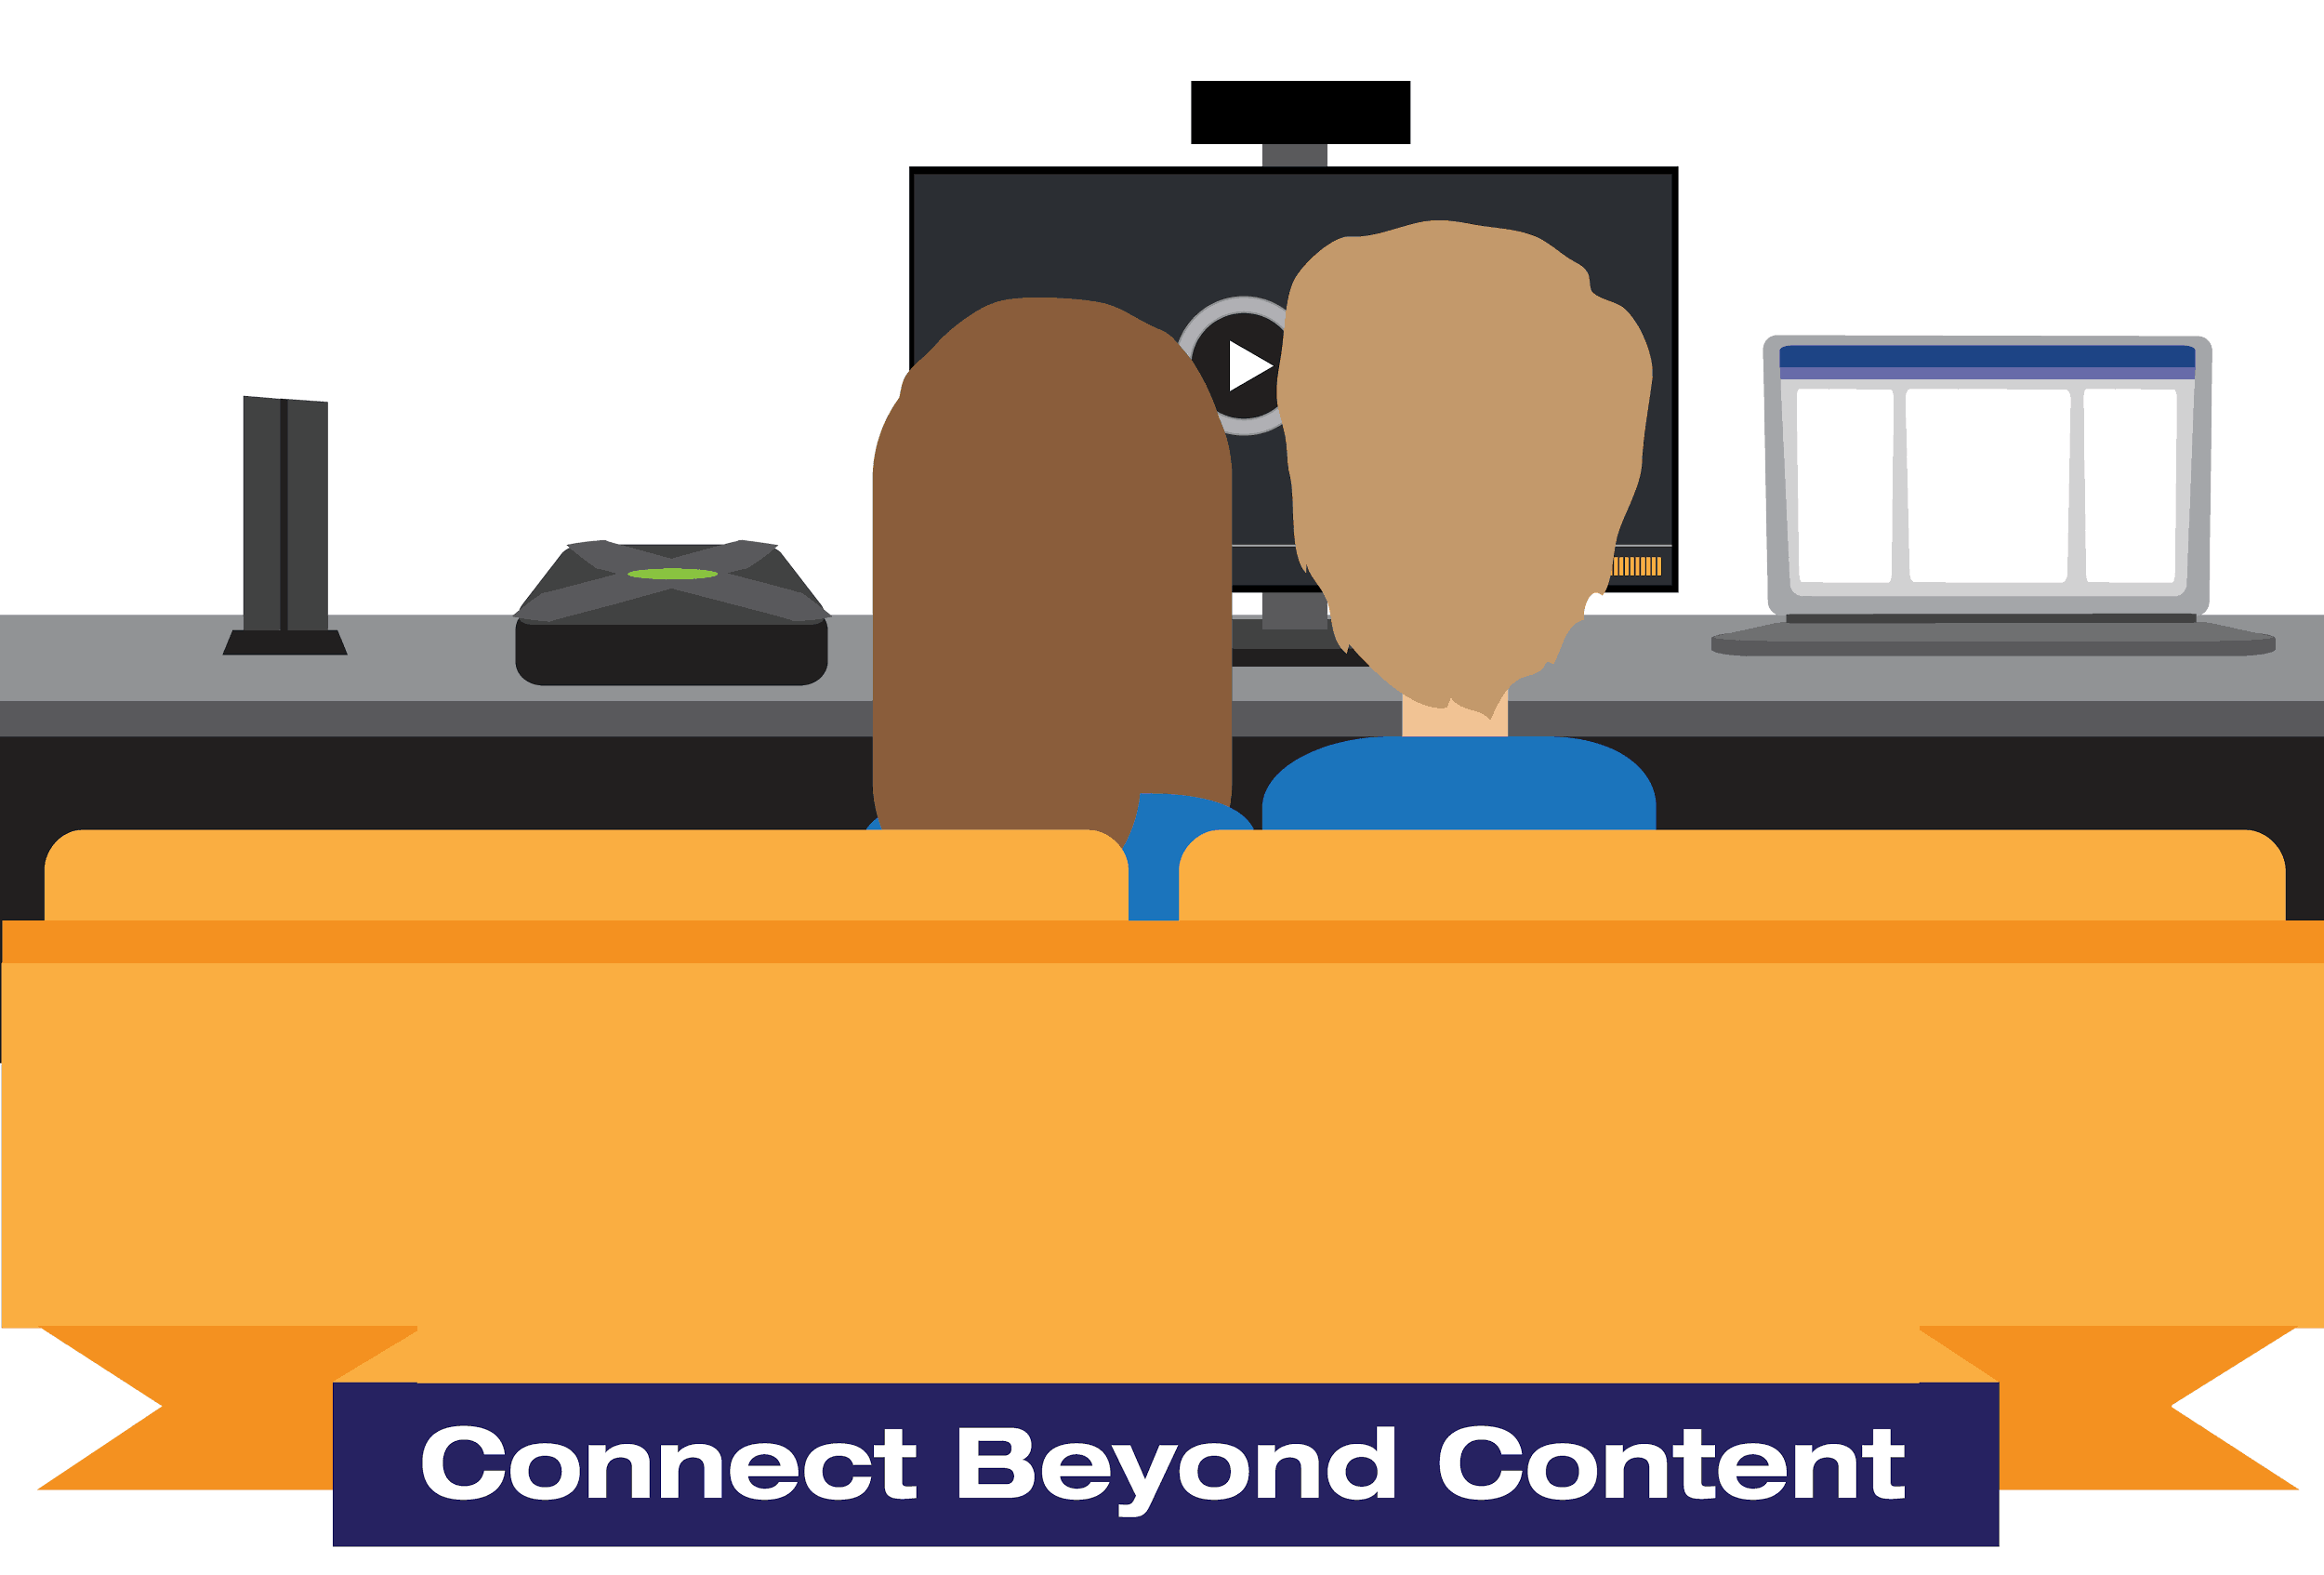 Connect Beyond content